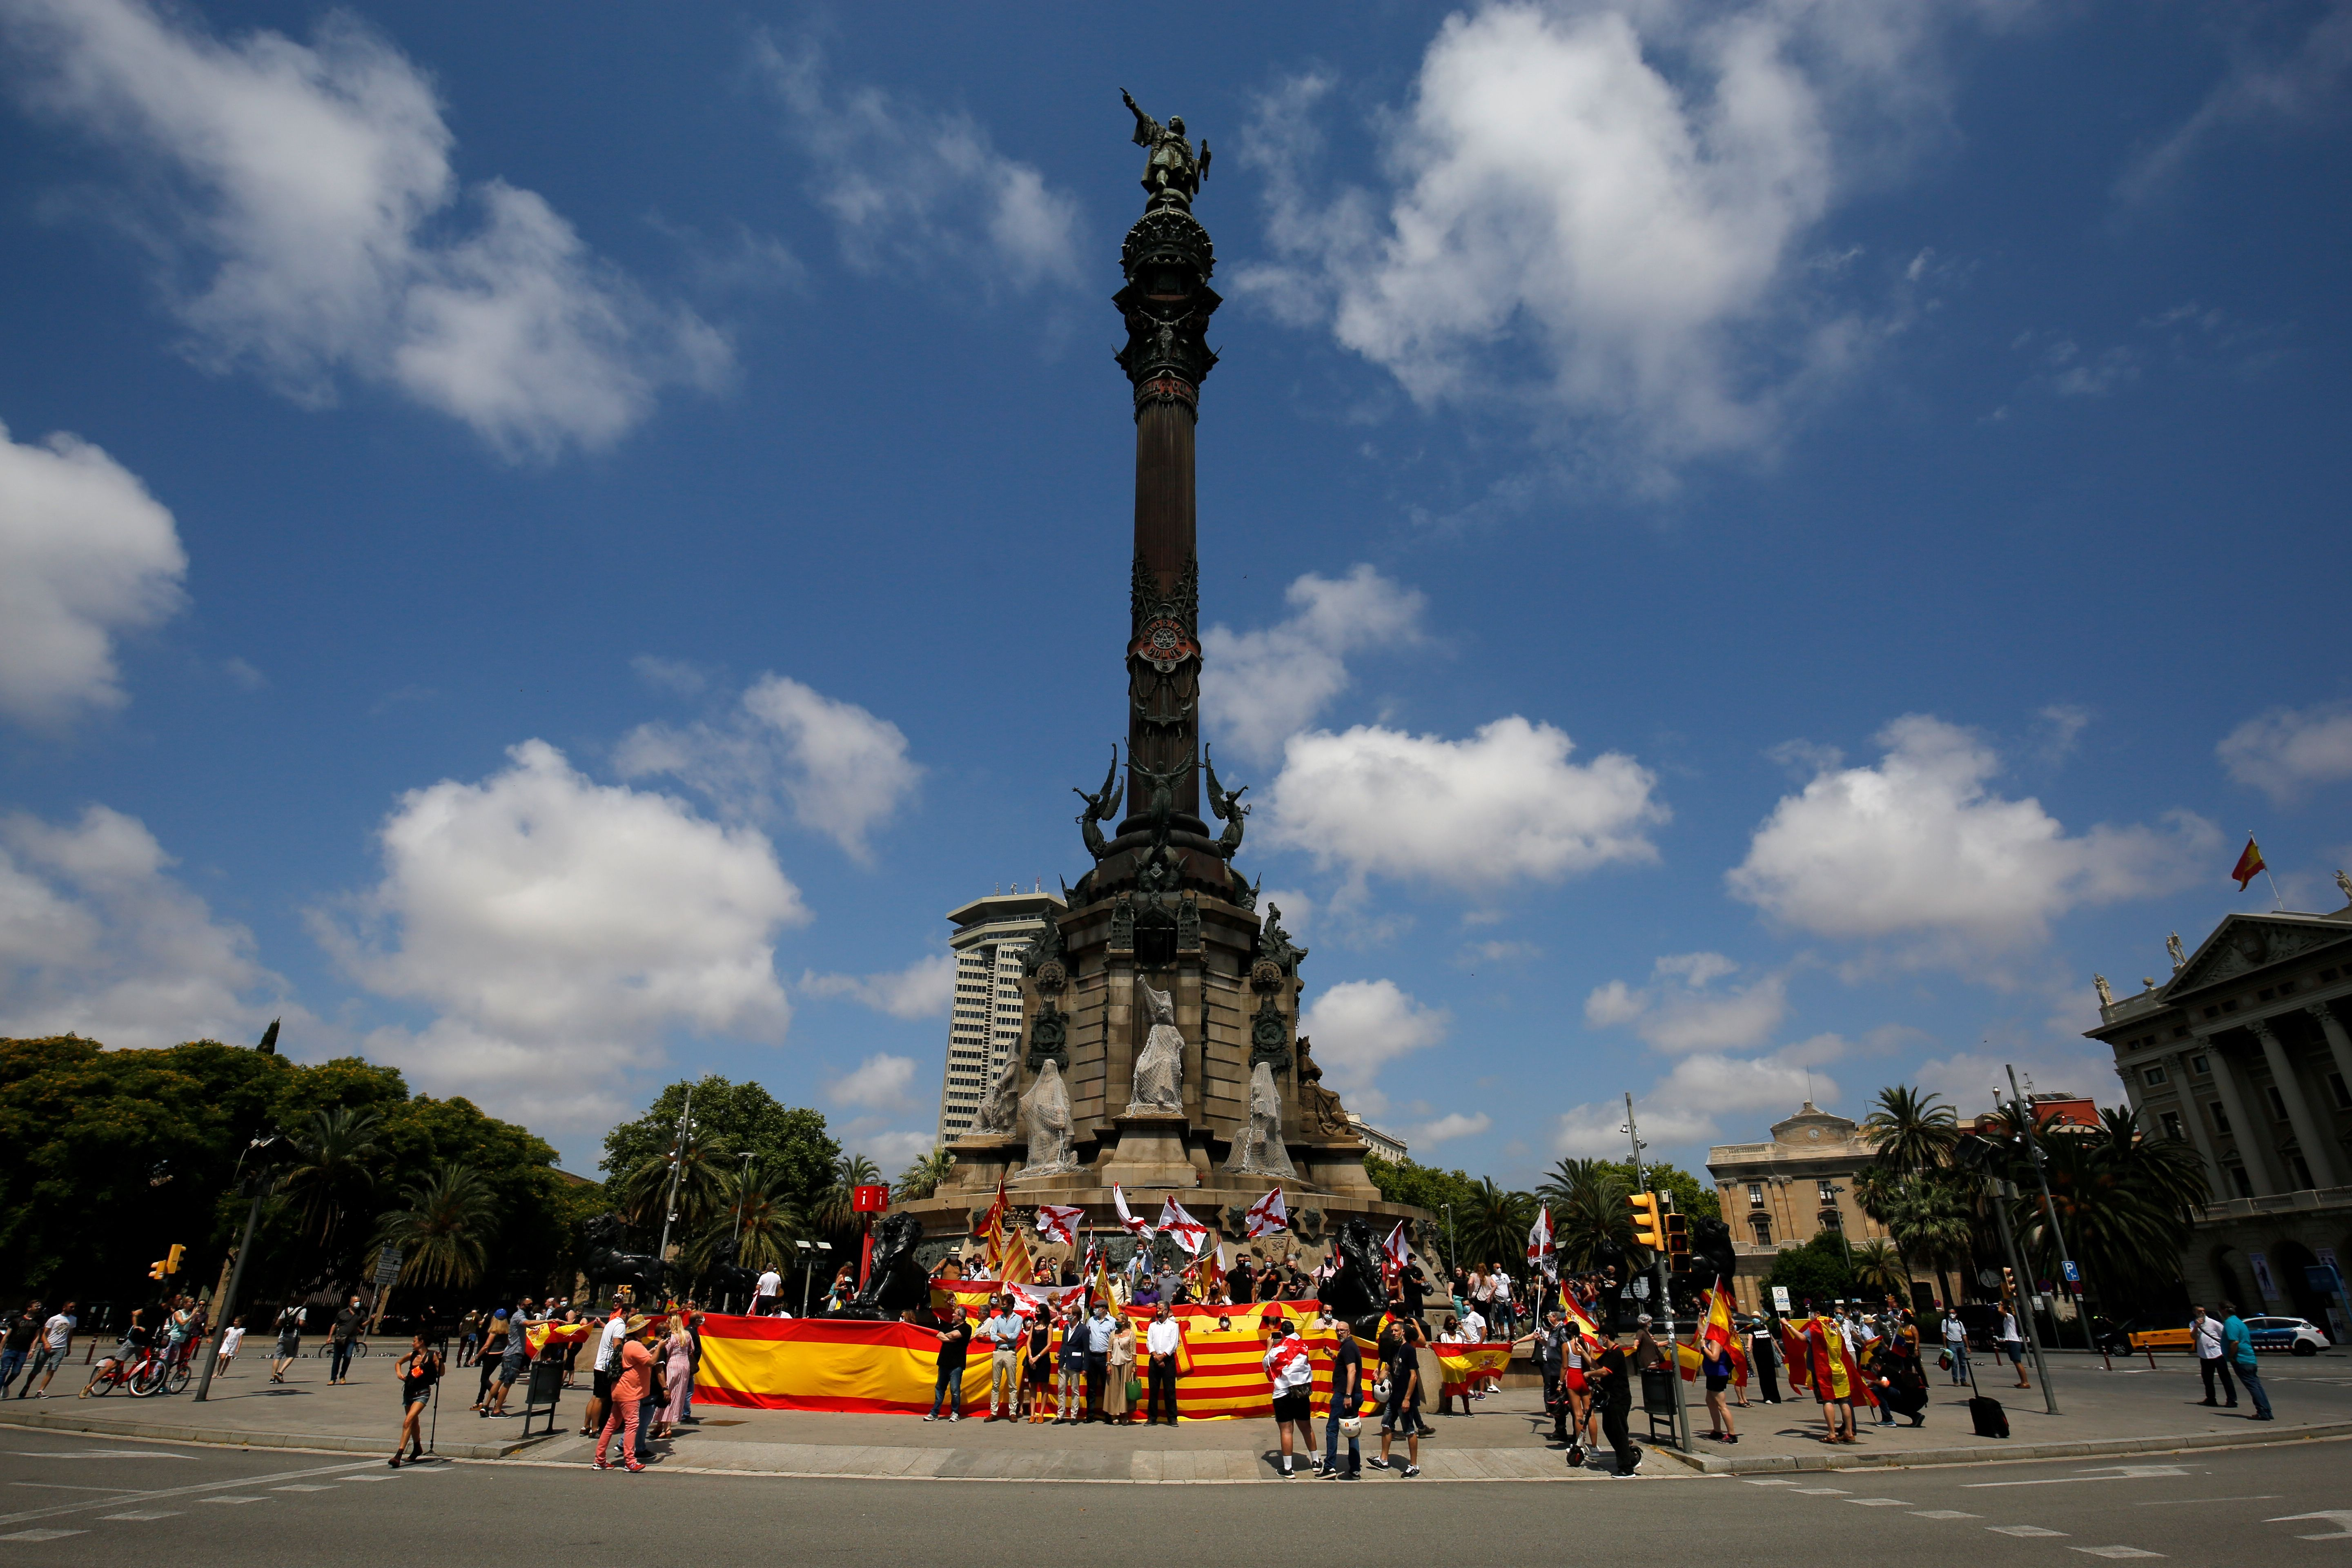 Protesters hold Spanish and Catalan Senyera flags along with Cross of Burgundy flags during a demonstration organised by Spain's far-right Vox party to preserve a statue of Christopher Columbus in Barcelona on June 27, 2020 as statues of slave traders and colonial figures tumble worldwide in a wave of anger against racism. (Photo by Pau Barrena/AFP via Getty Images)